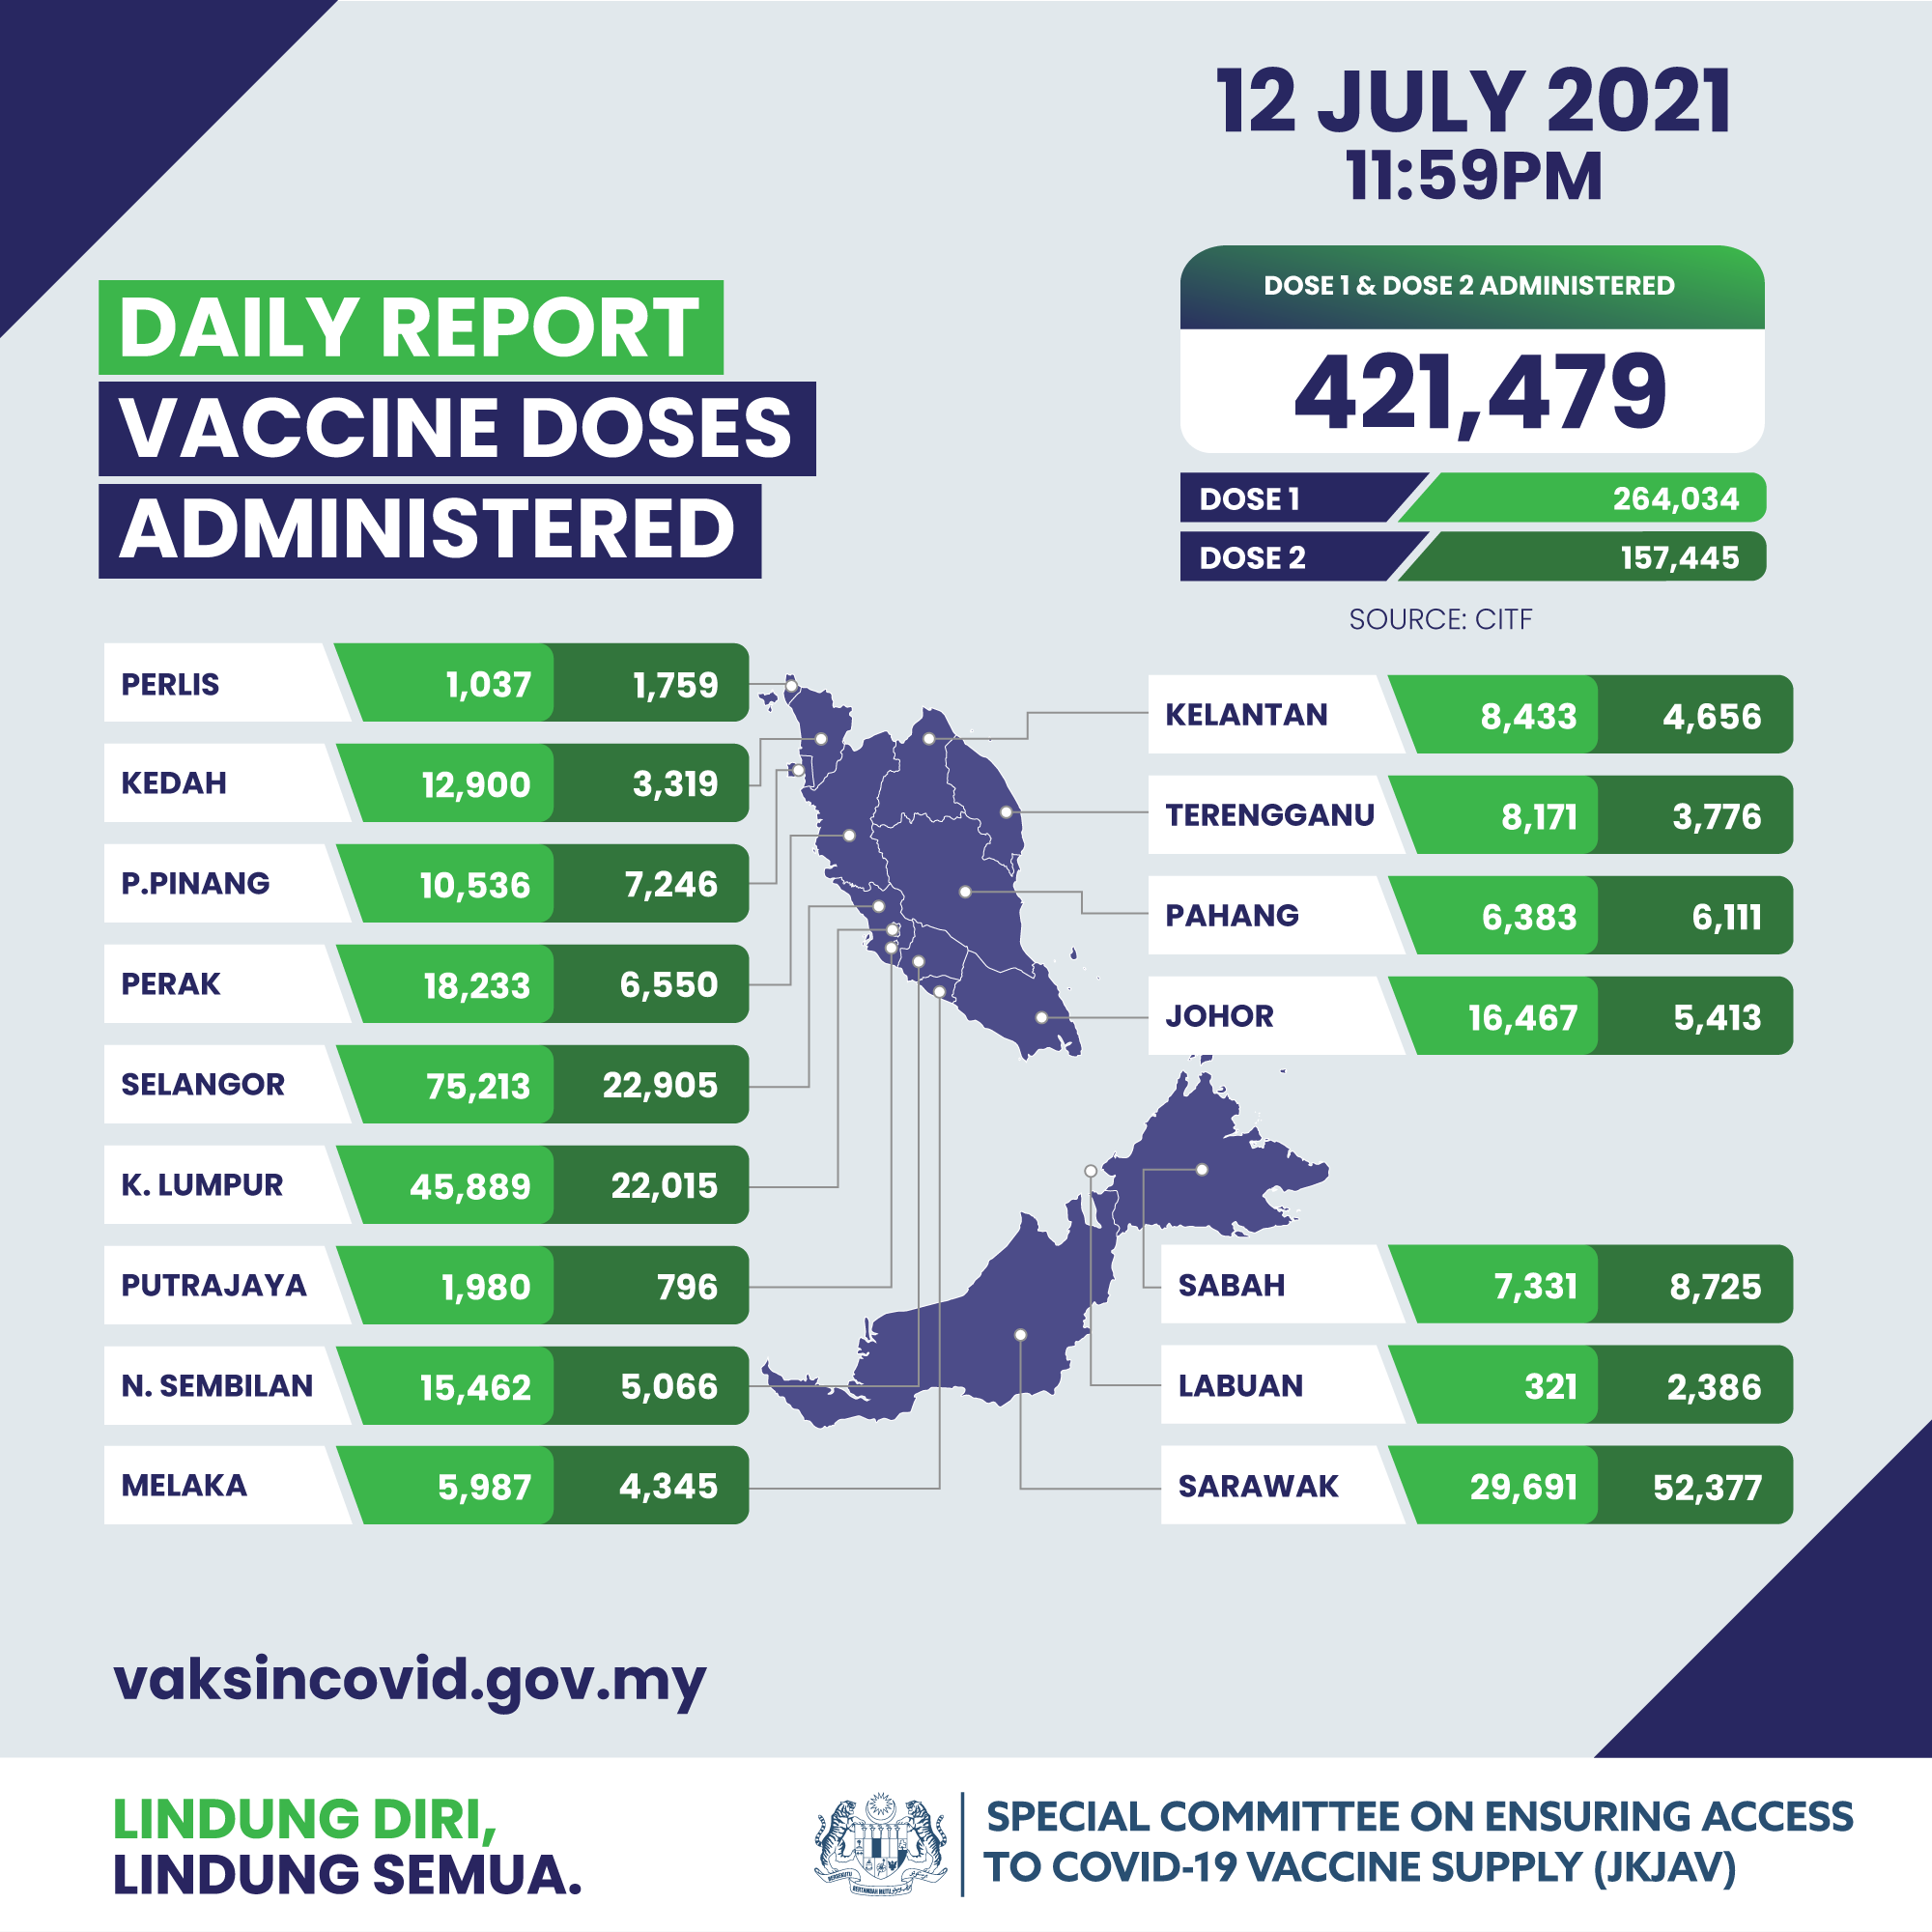 Covid-19 cases in M'sia on 13th July - vaccinations